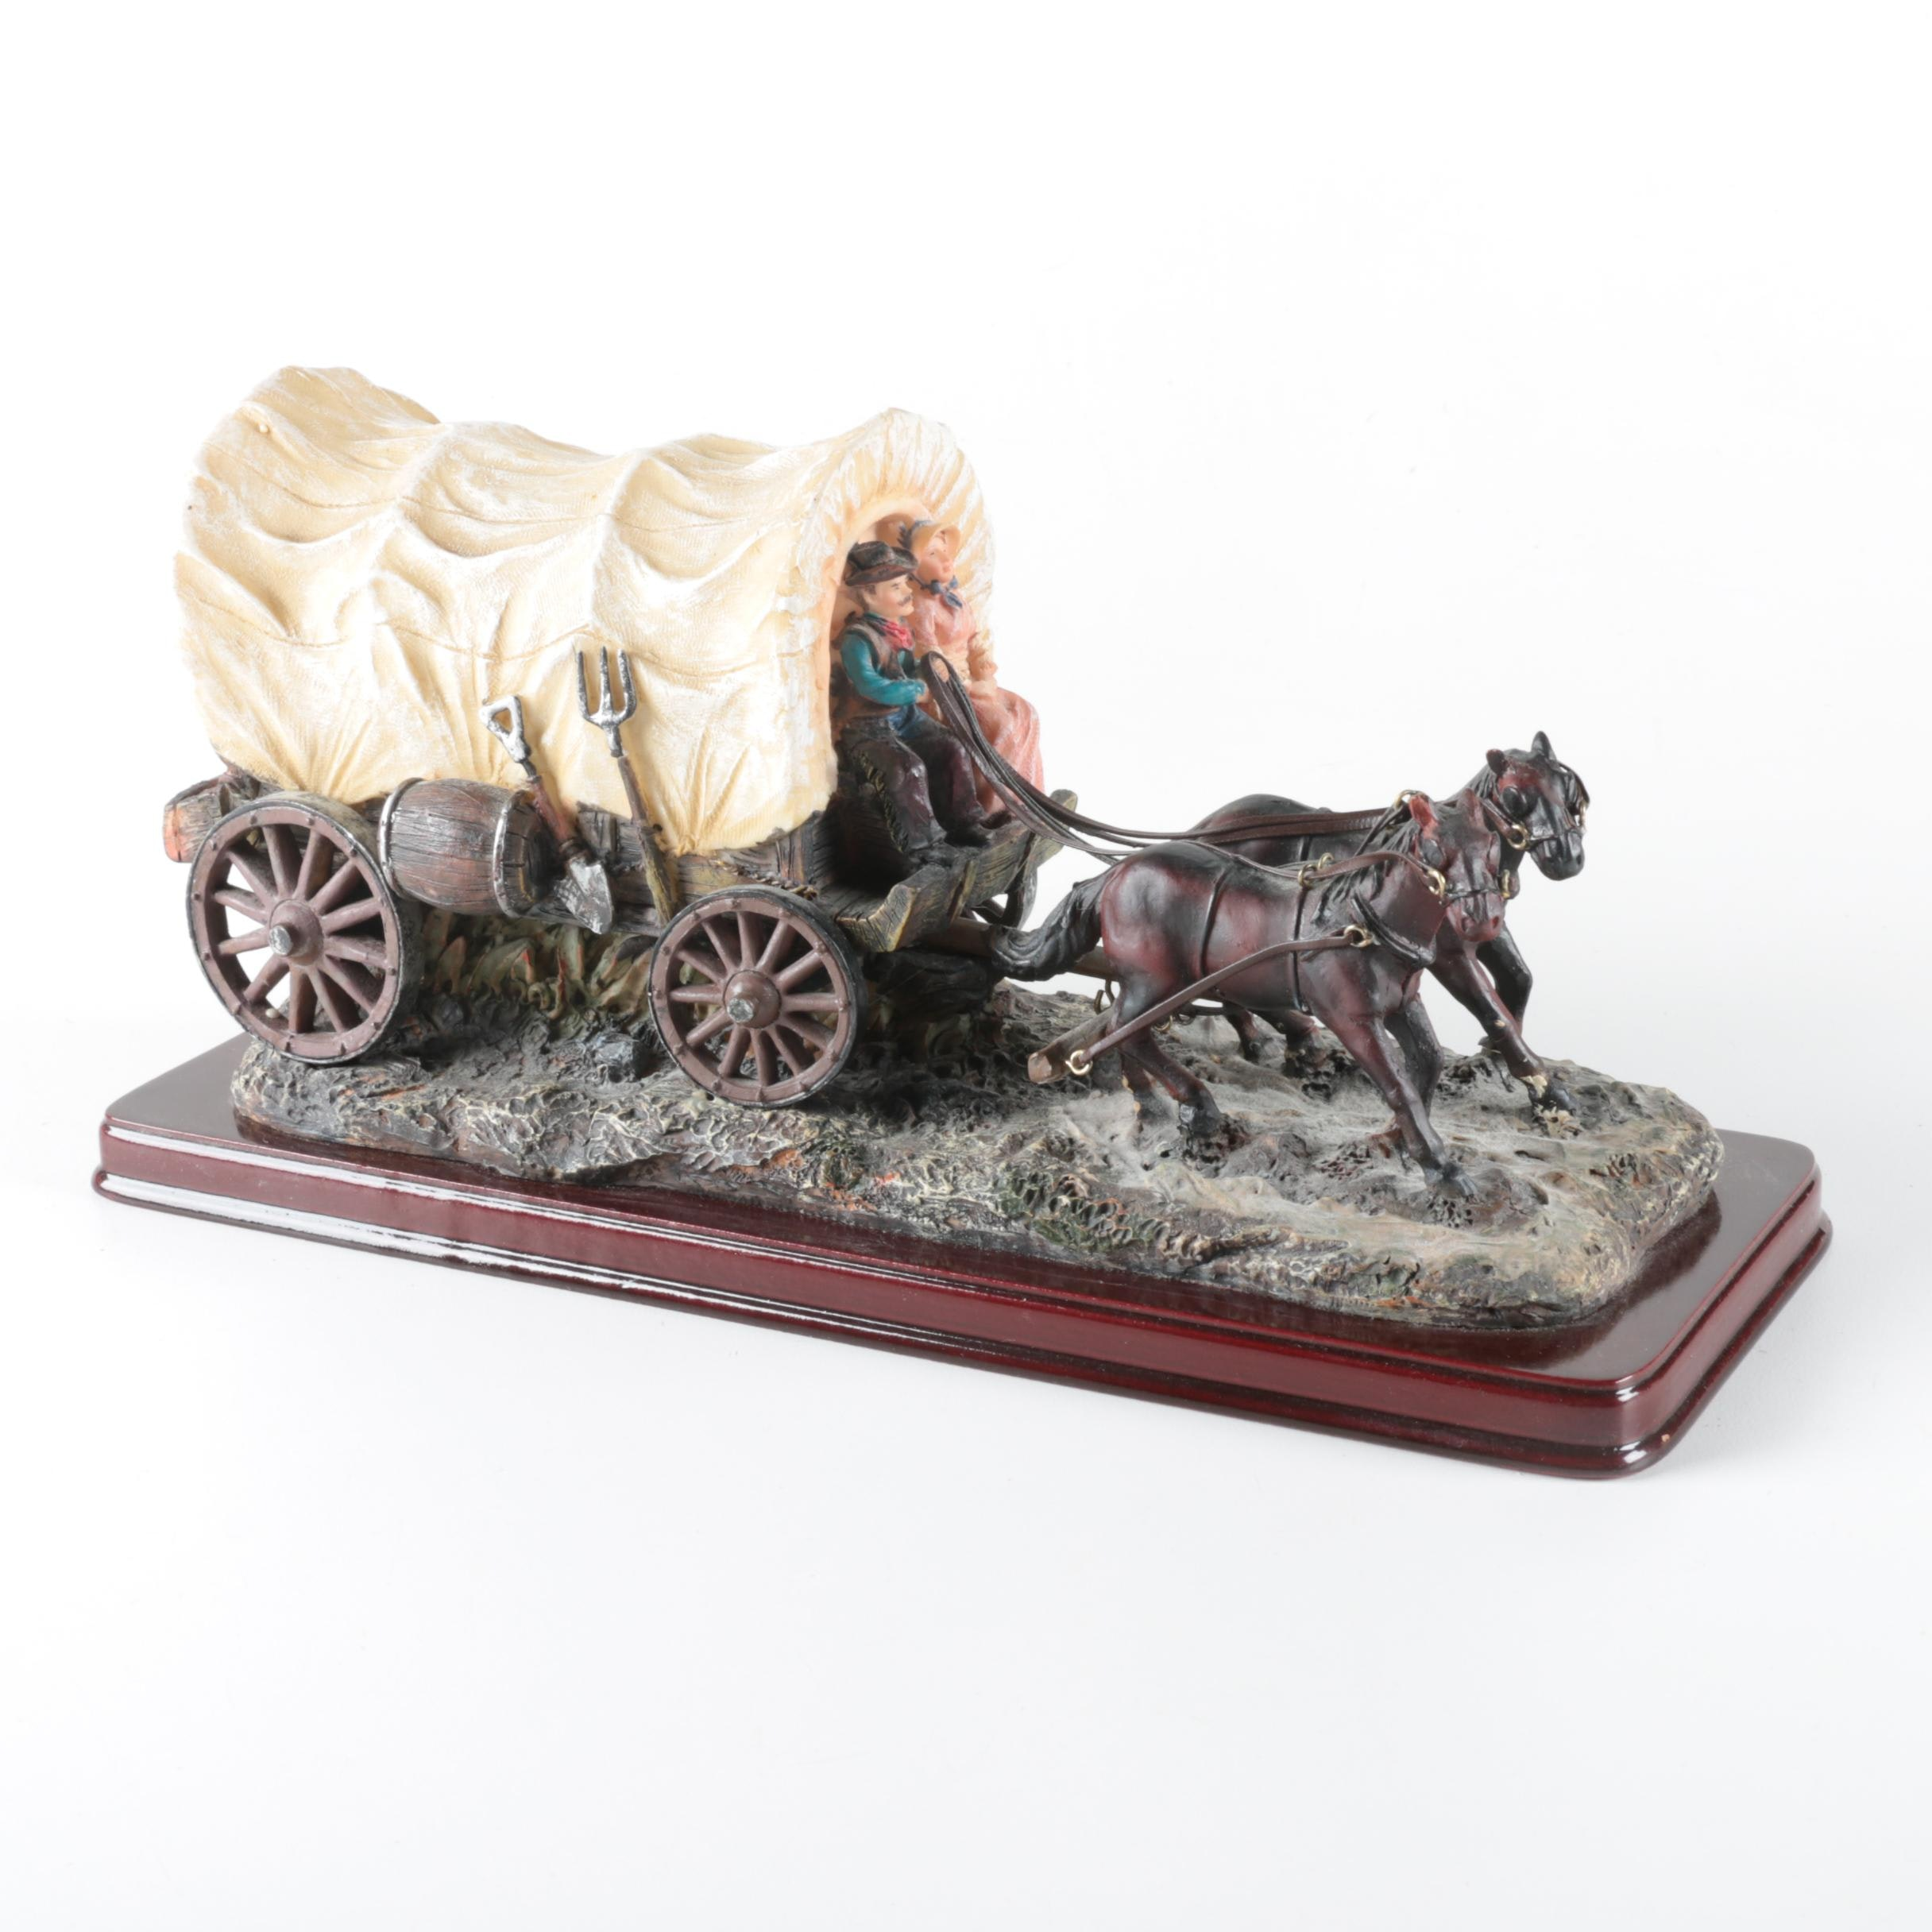 Vintage American West Themed Decor